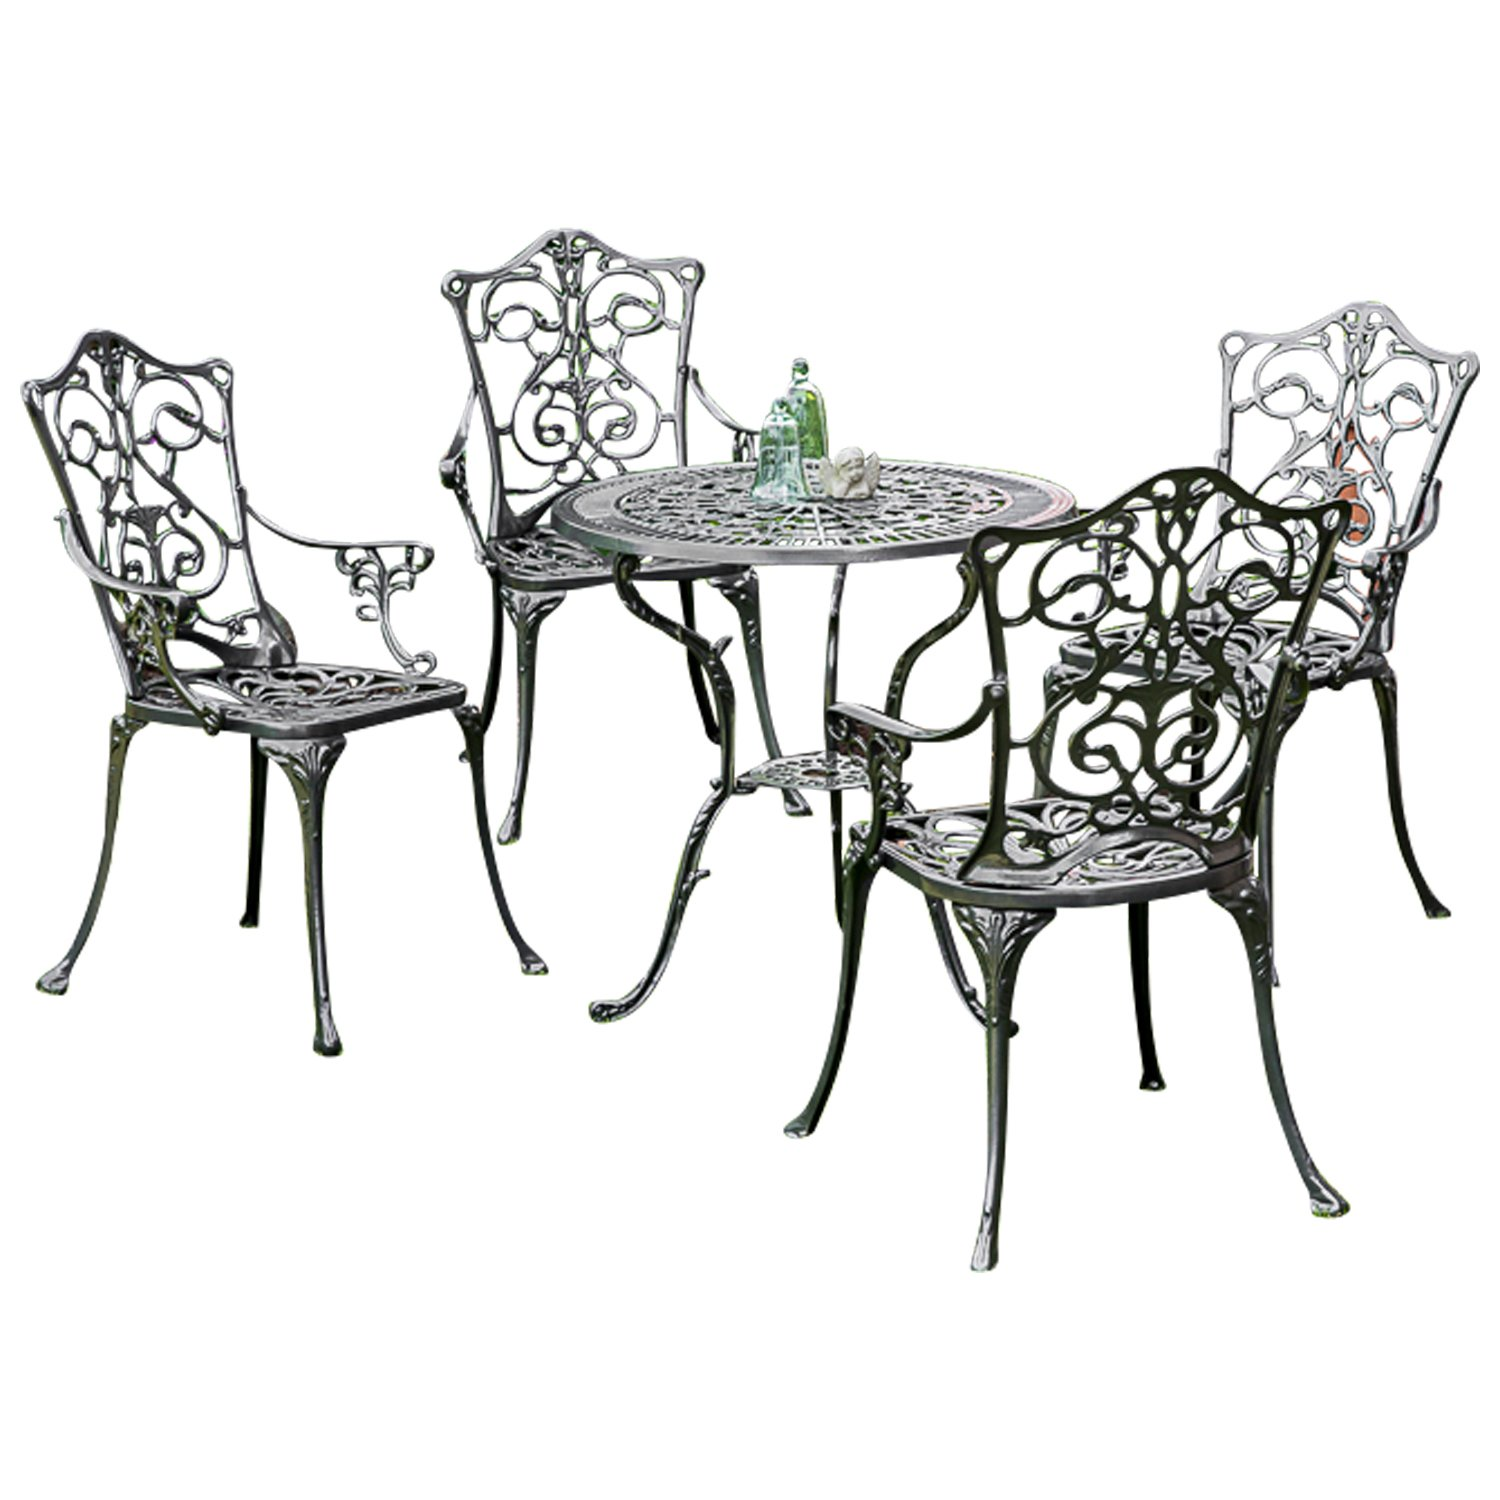 gartenset lugano 5 teilig aluguss graphit wetterfest g nstig. Black Bedroom Furniture Sets. Home Design Ideas